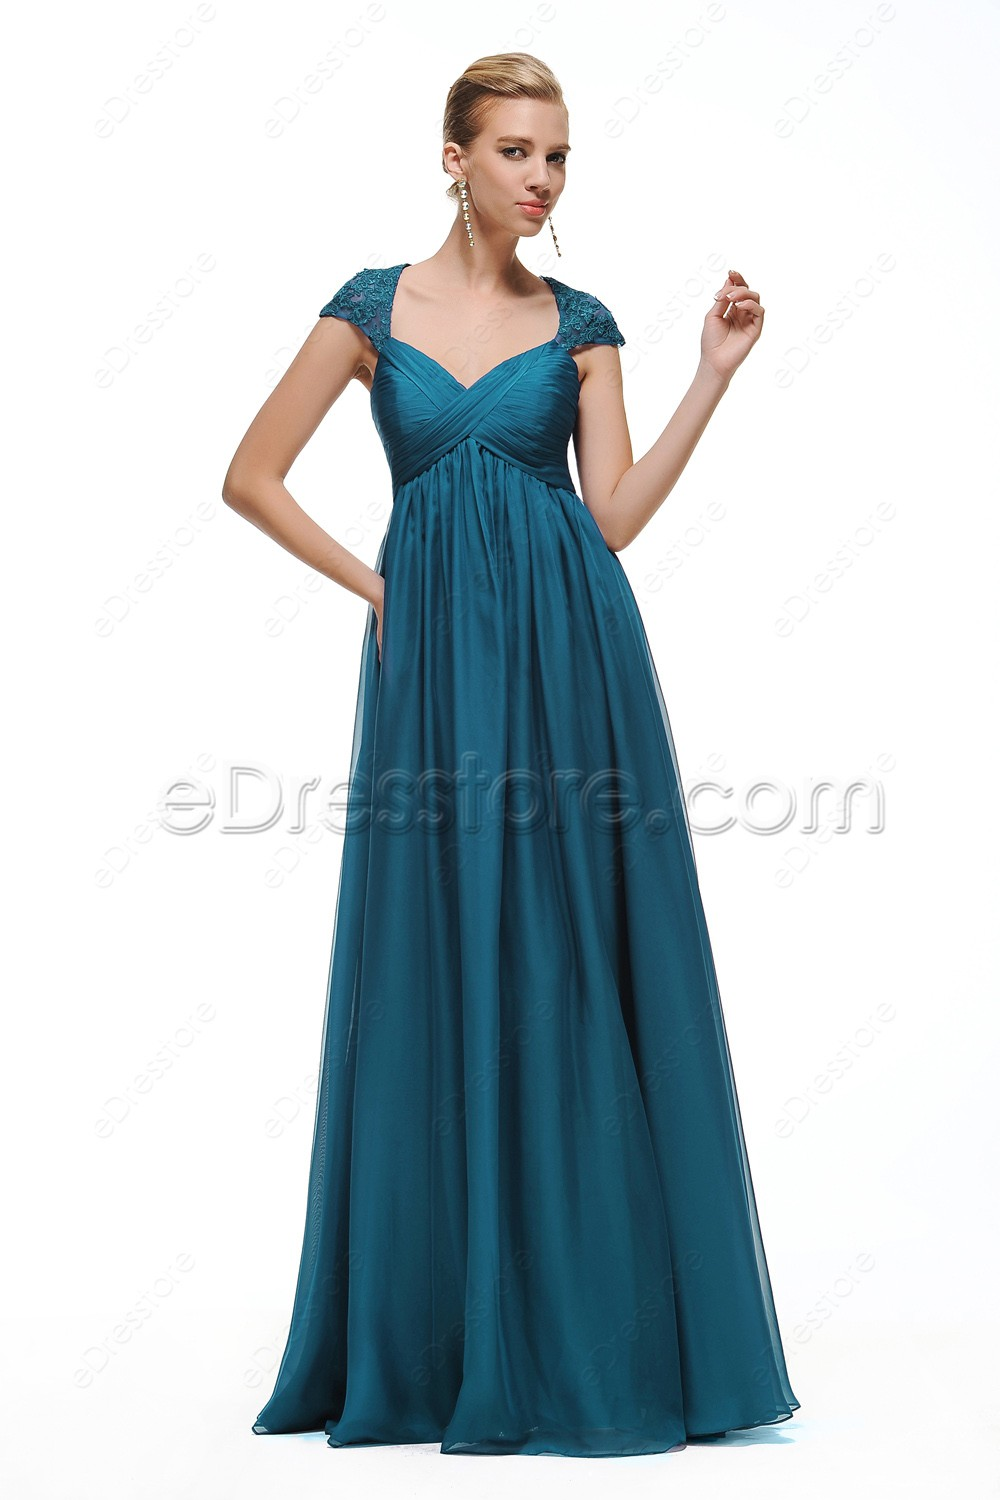 maternity wedding dress with sleeves cap sleeves teal maternity bridesmaid dresses 5755